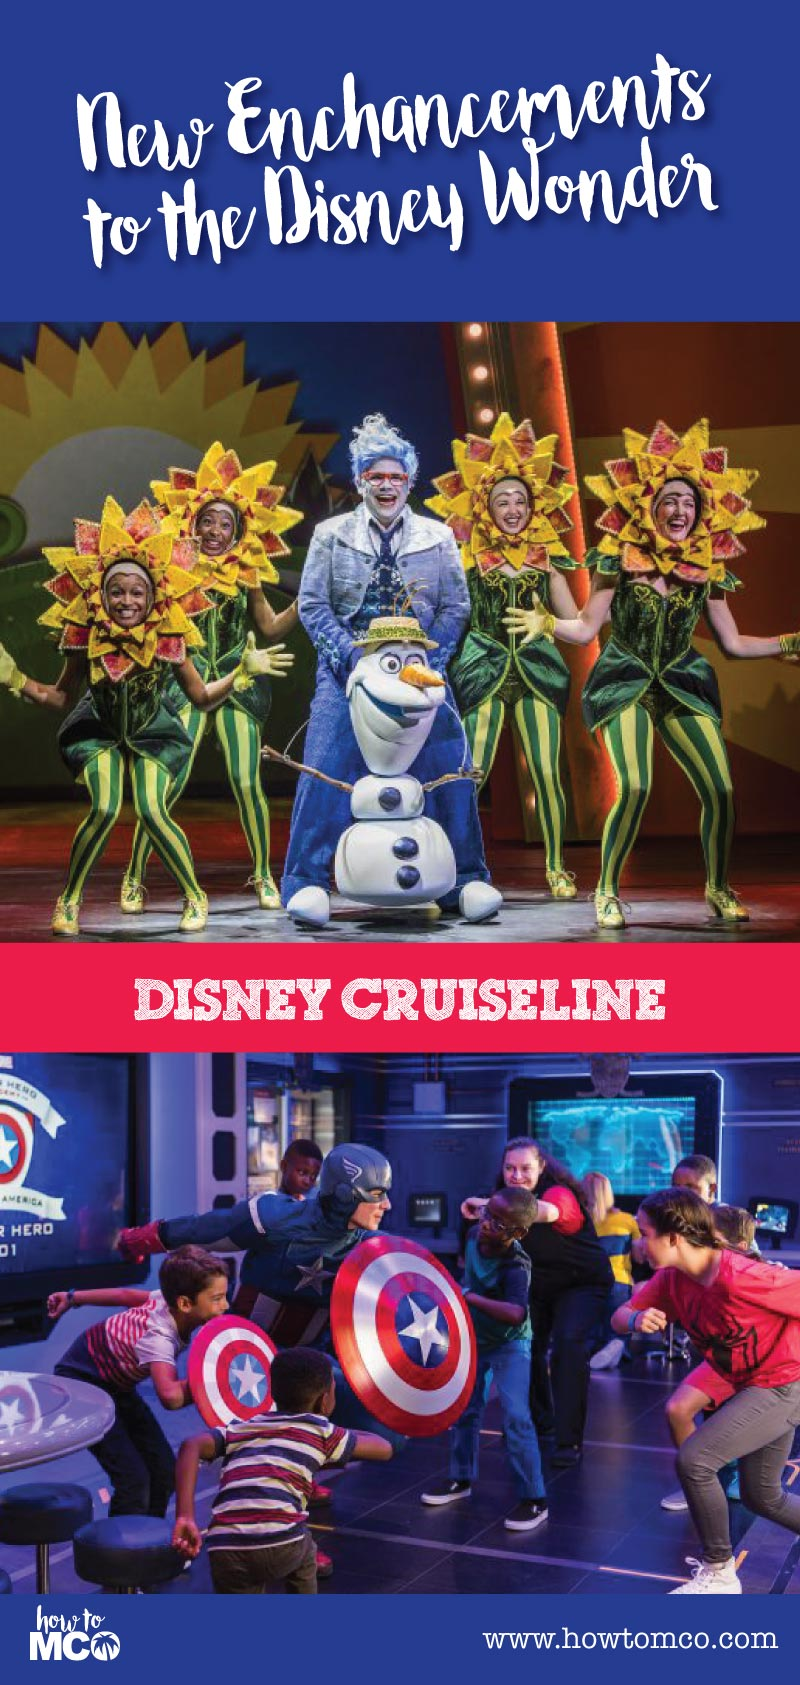 Late in 2016 the Disney Wonder went under a much-needed update. This was the last ship to get some Disney TLC. The featured enhancements include an exclusive new theatrical production, imaginative spaces for children, a jazzy restaurant, and an English pub.